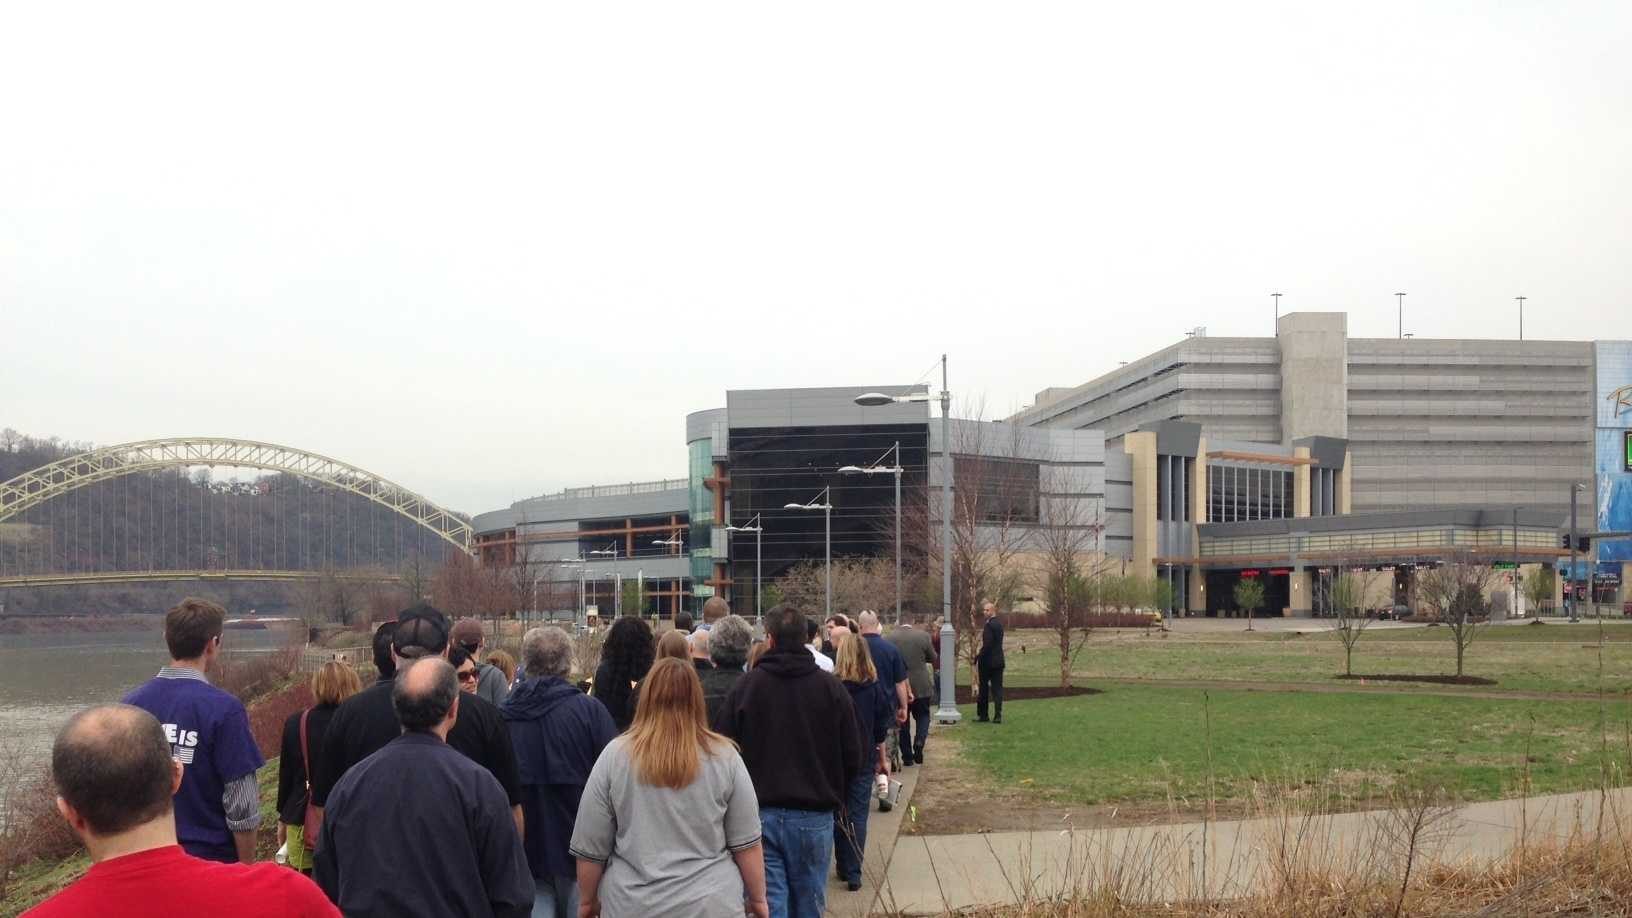 Workers march to Rivers Casino